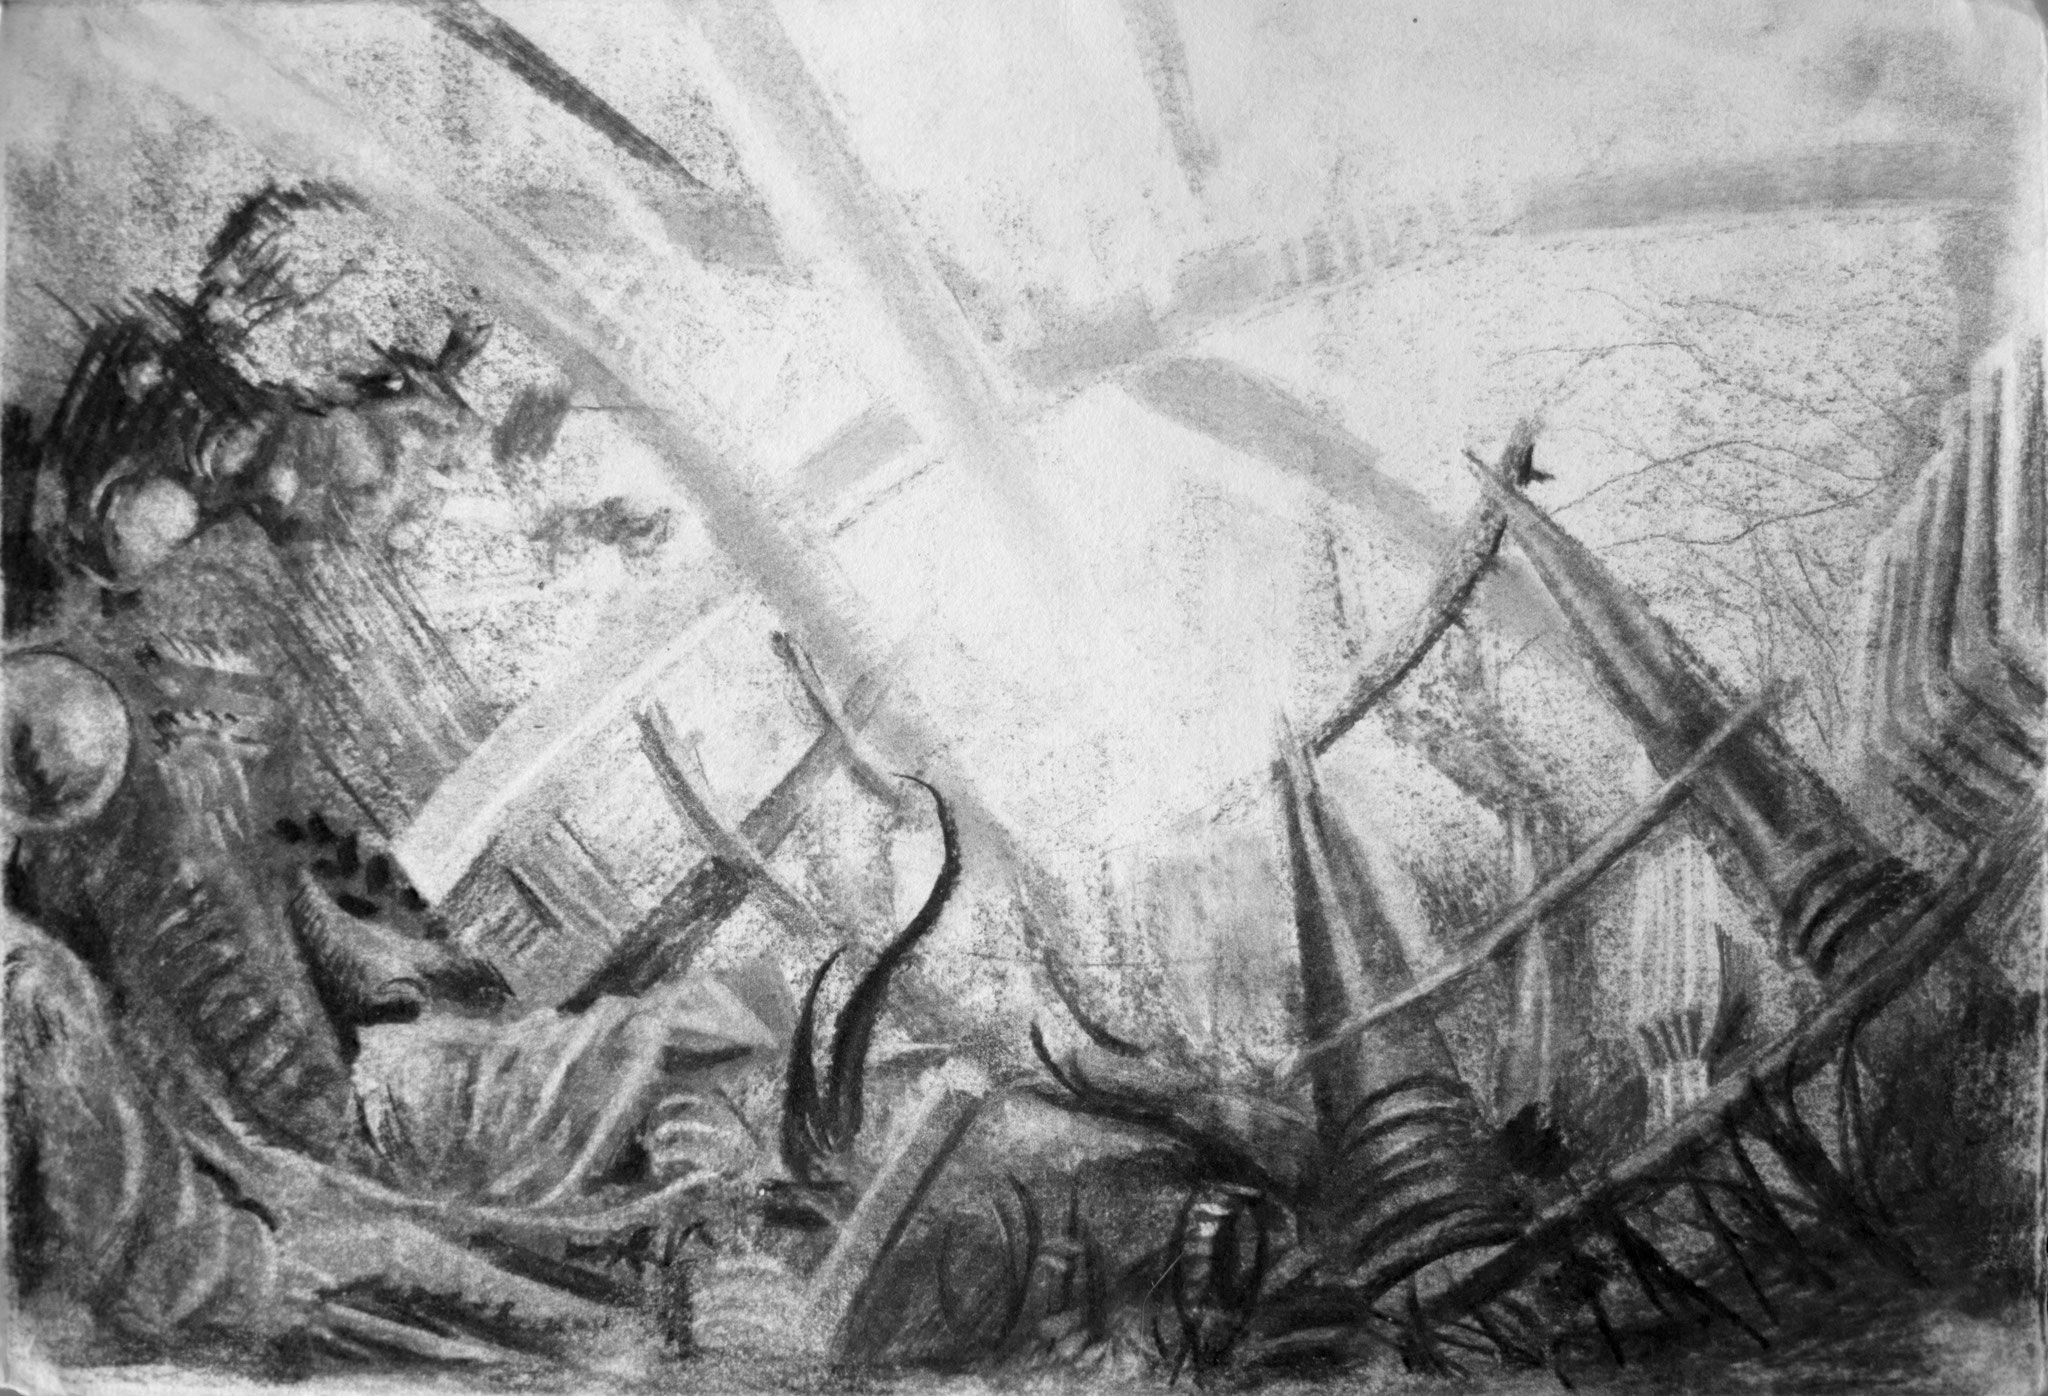 2013 - Arena - Charcoal on paper 60 x 40 cm - AVAILABLE